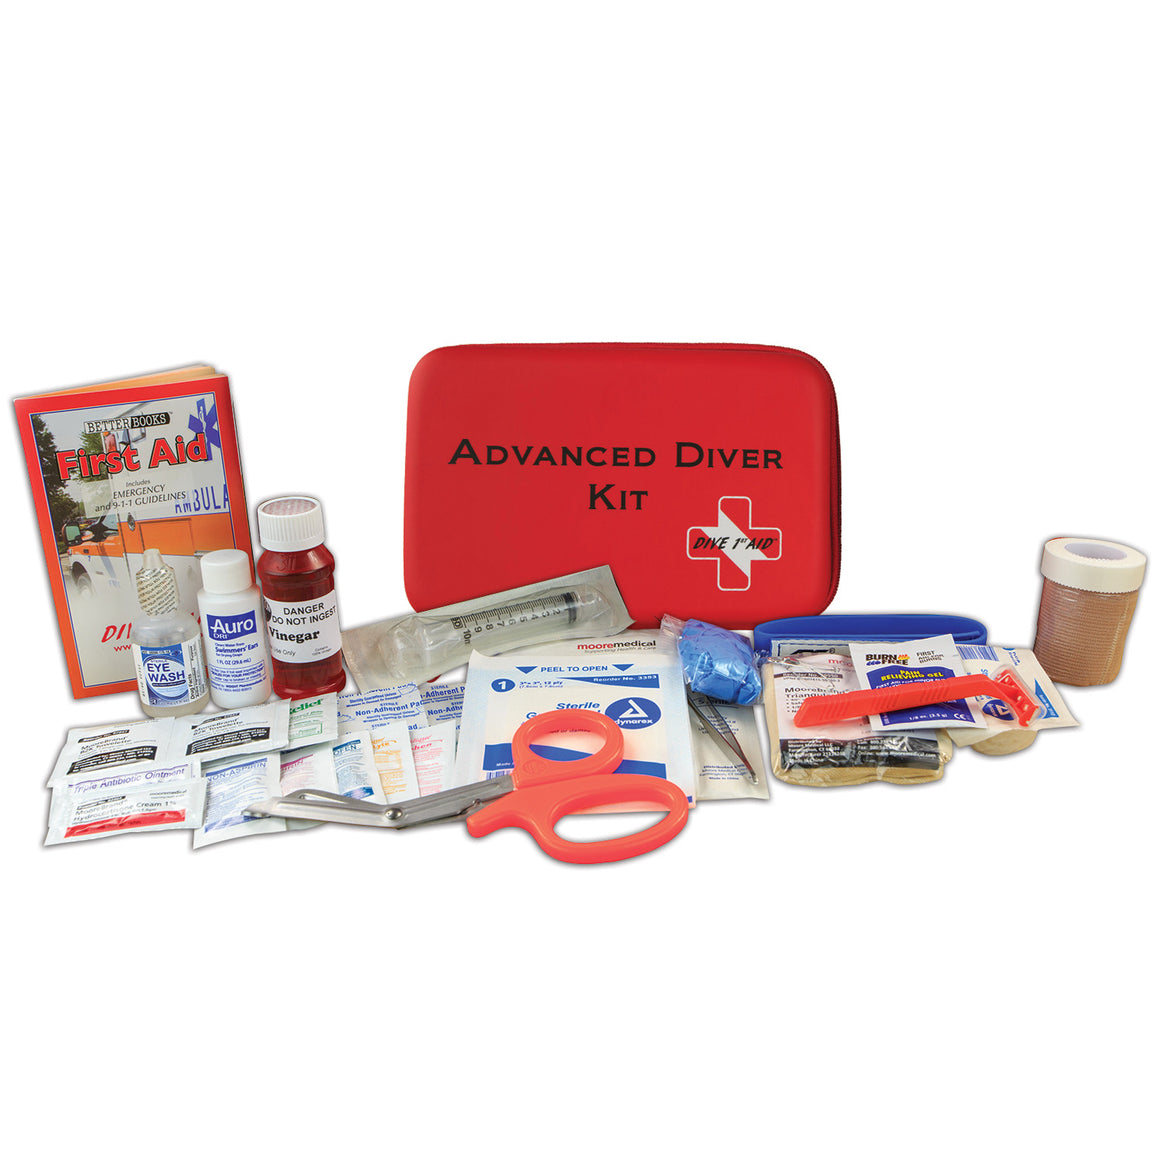 Advanced Diver Kit